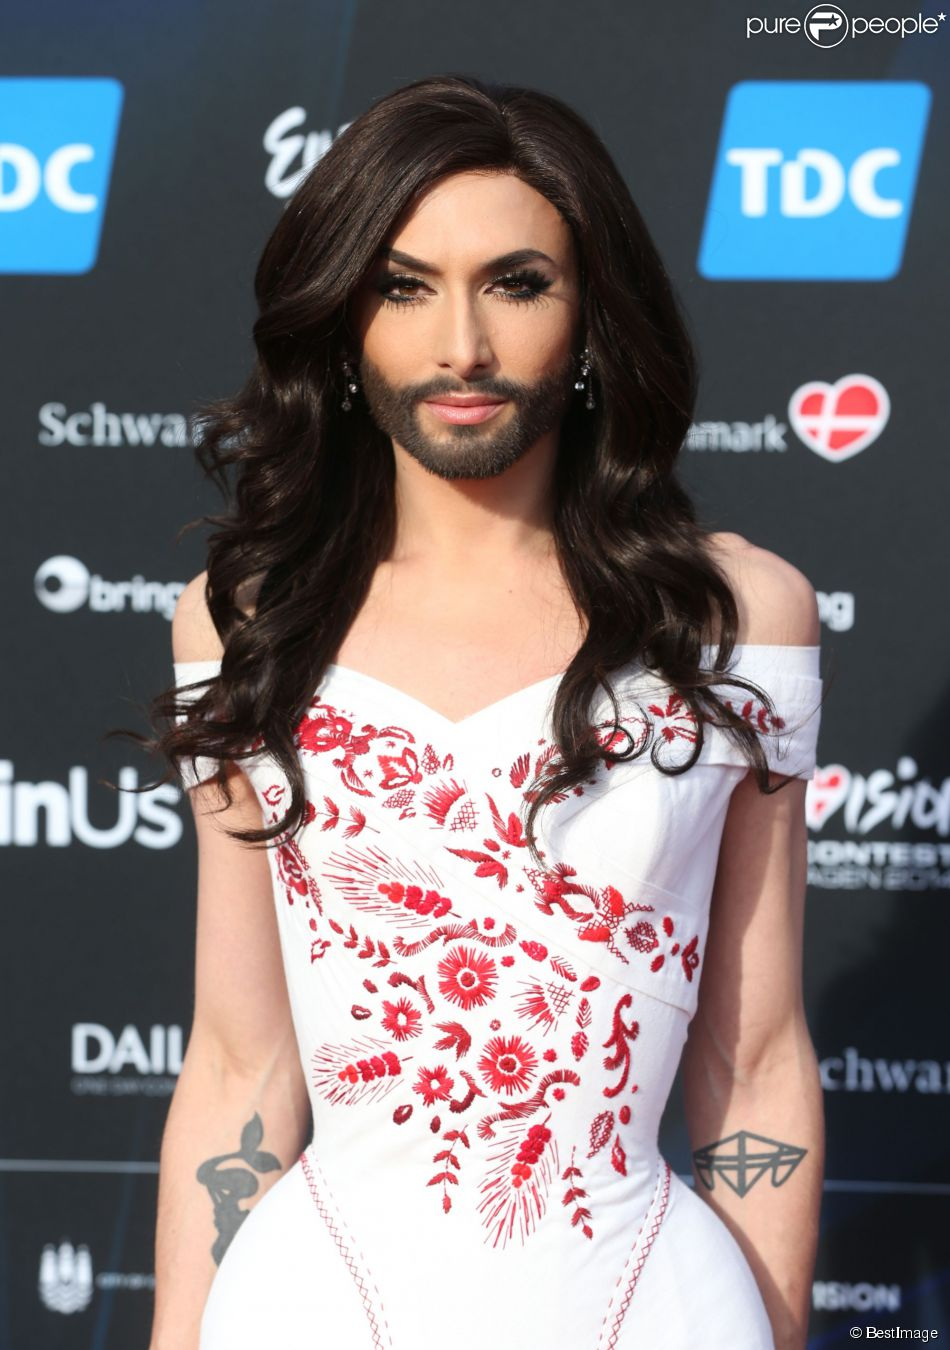 eurovision 2014 conchita w rst la diva barbe qui. Black Bedroom Furniture Sets. Home Design Ideas